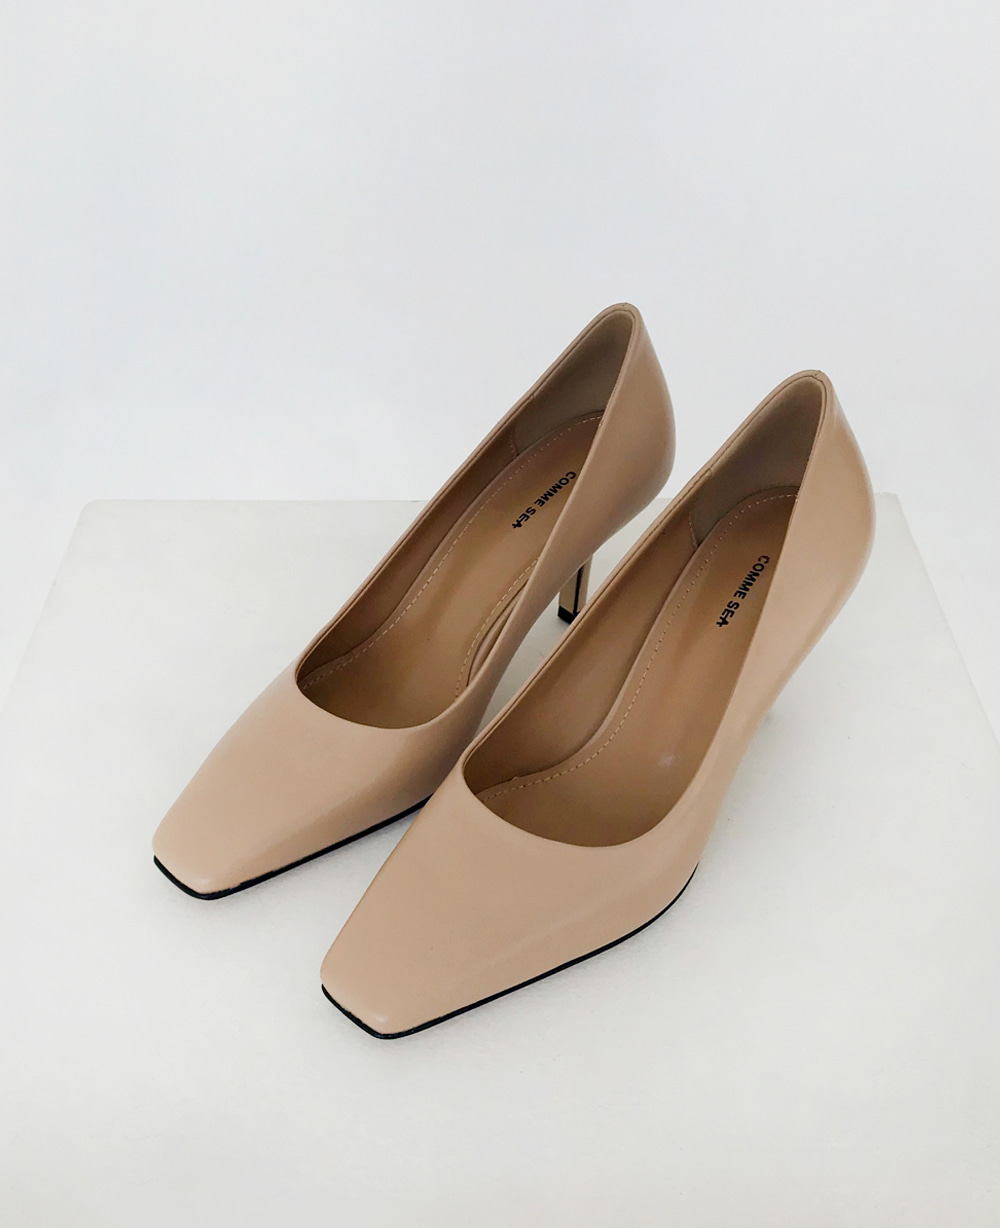 Classic Square Toe Pumps - BEIGE (25% OFF)